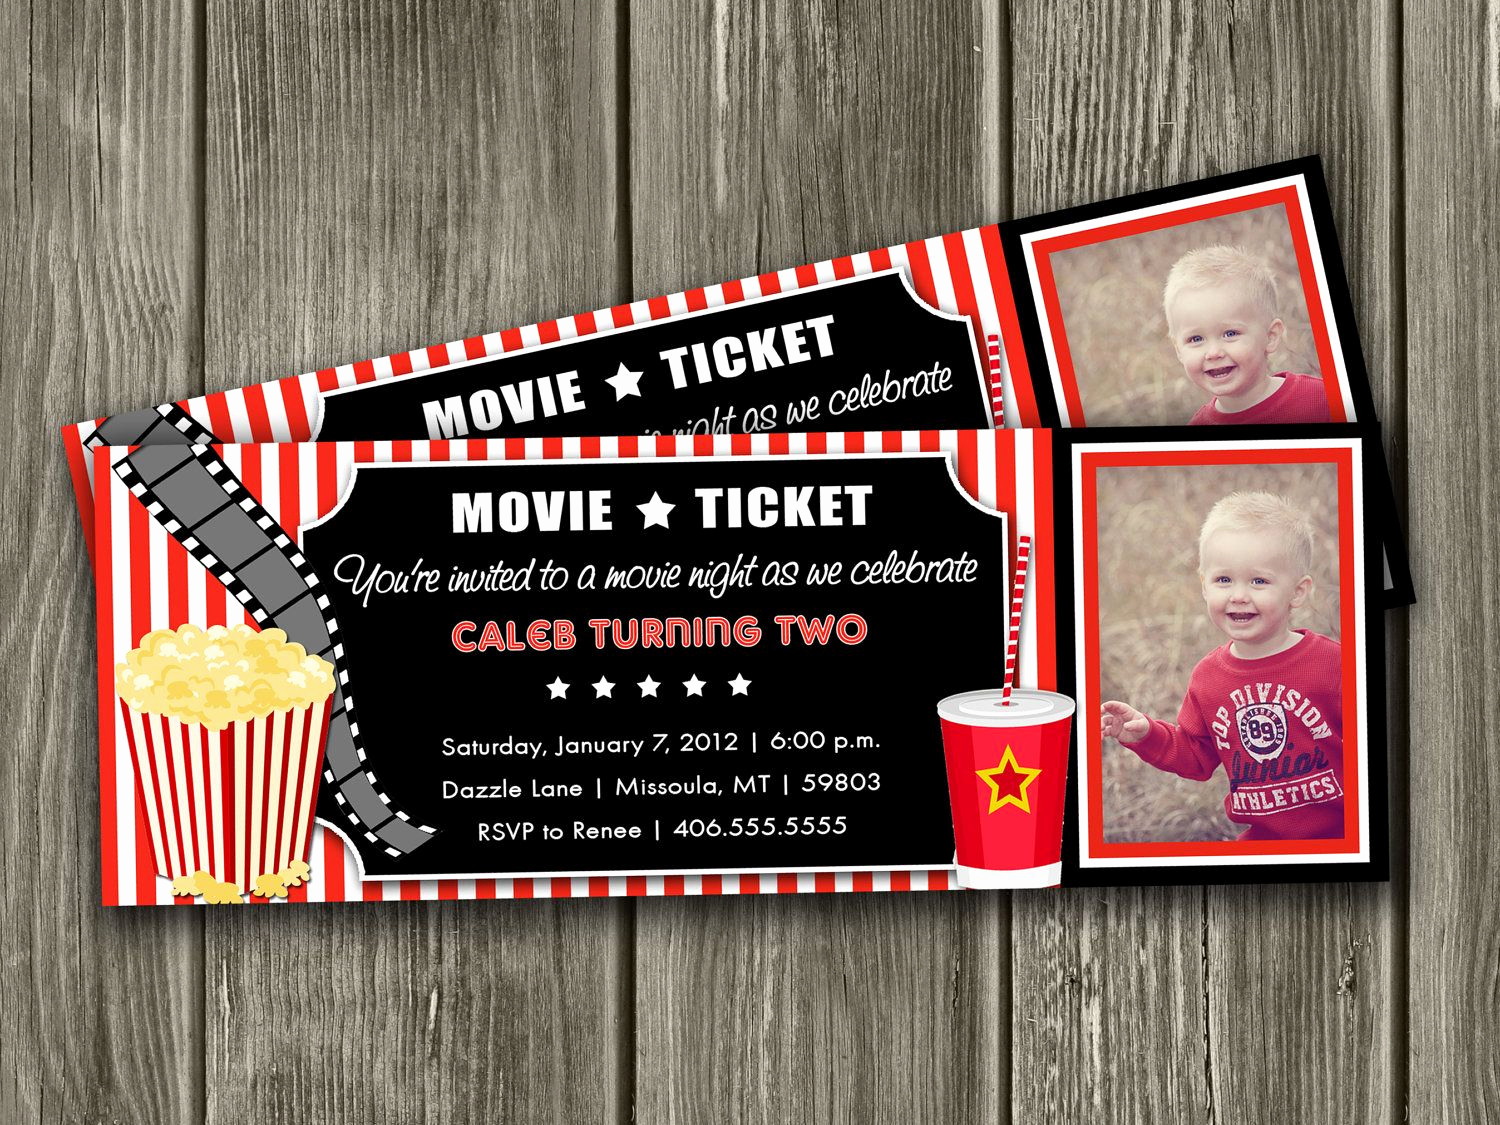 Movie Ticket Birthday Invitation Luxury Movie Ticket Invitation Free Thank You Card by